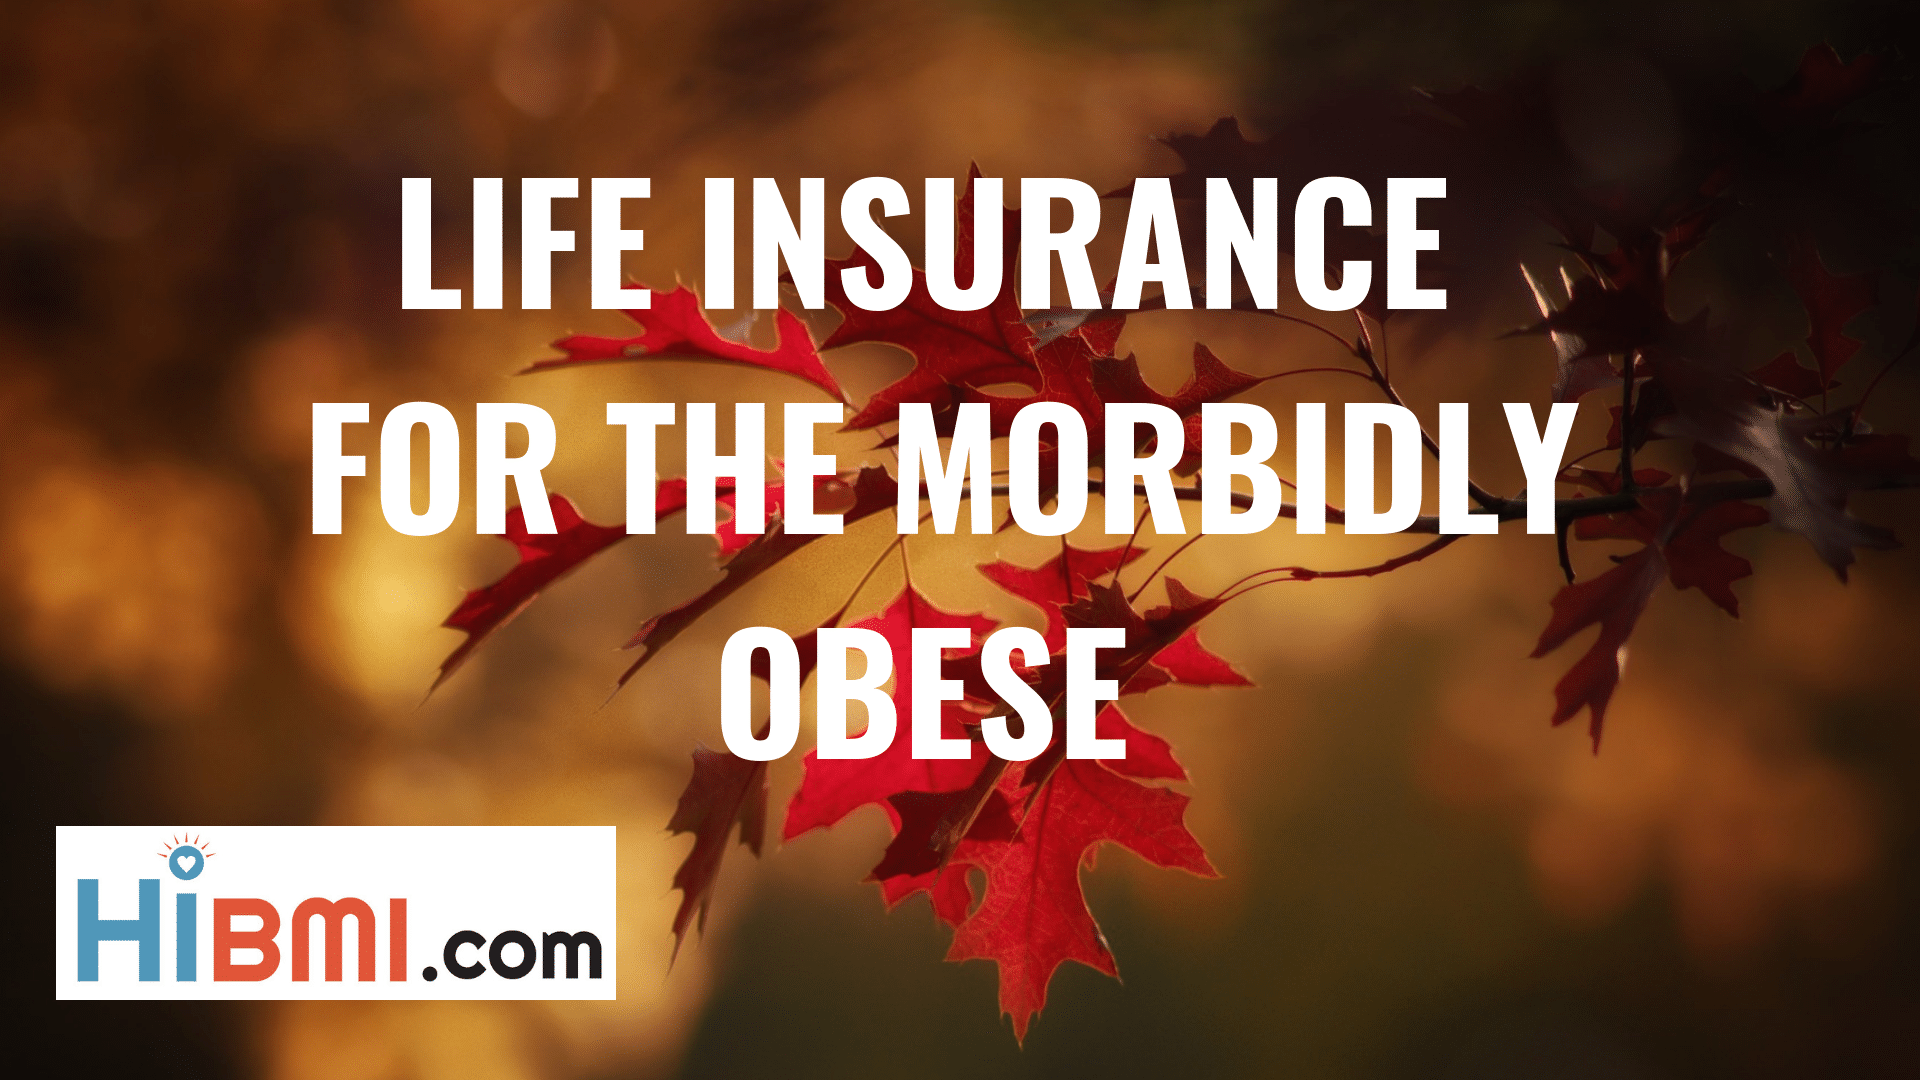 life insurance for the morbidly obese, term life insurance, whole life insurance